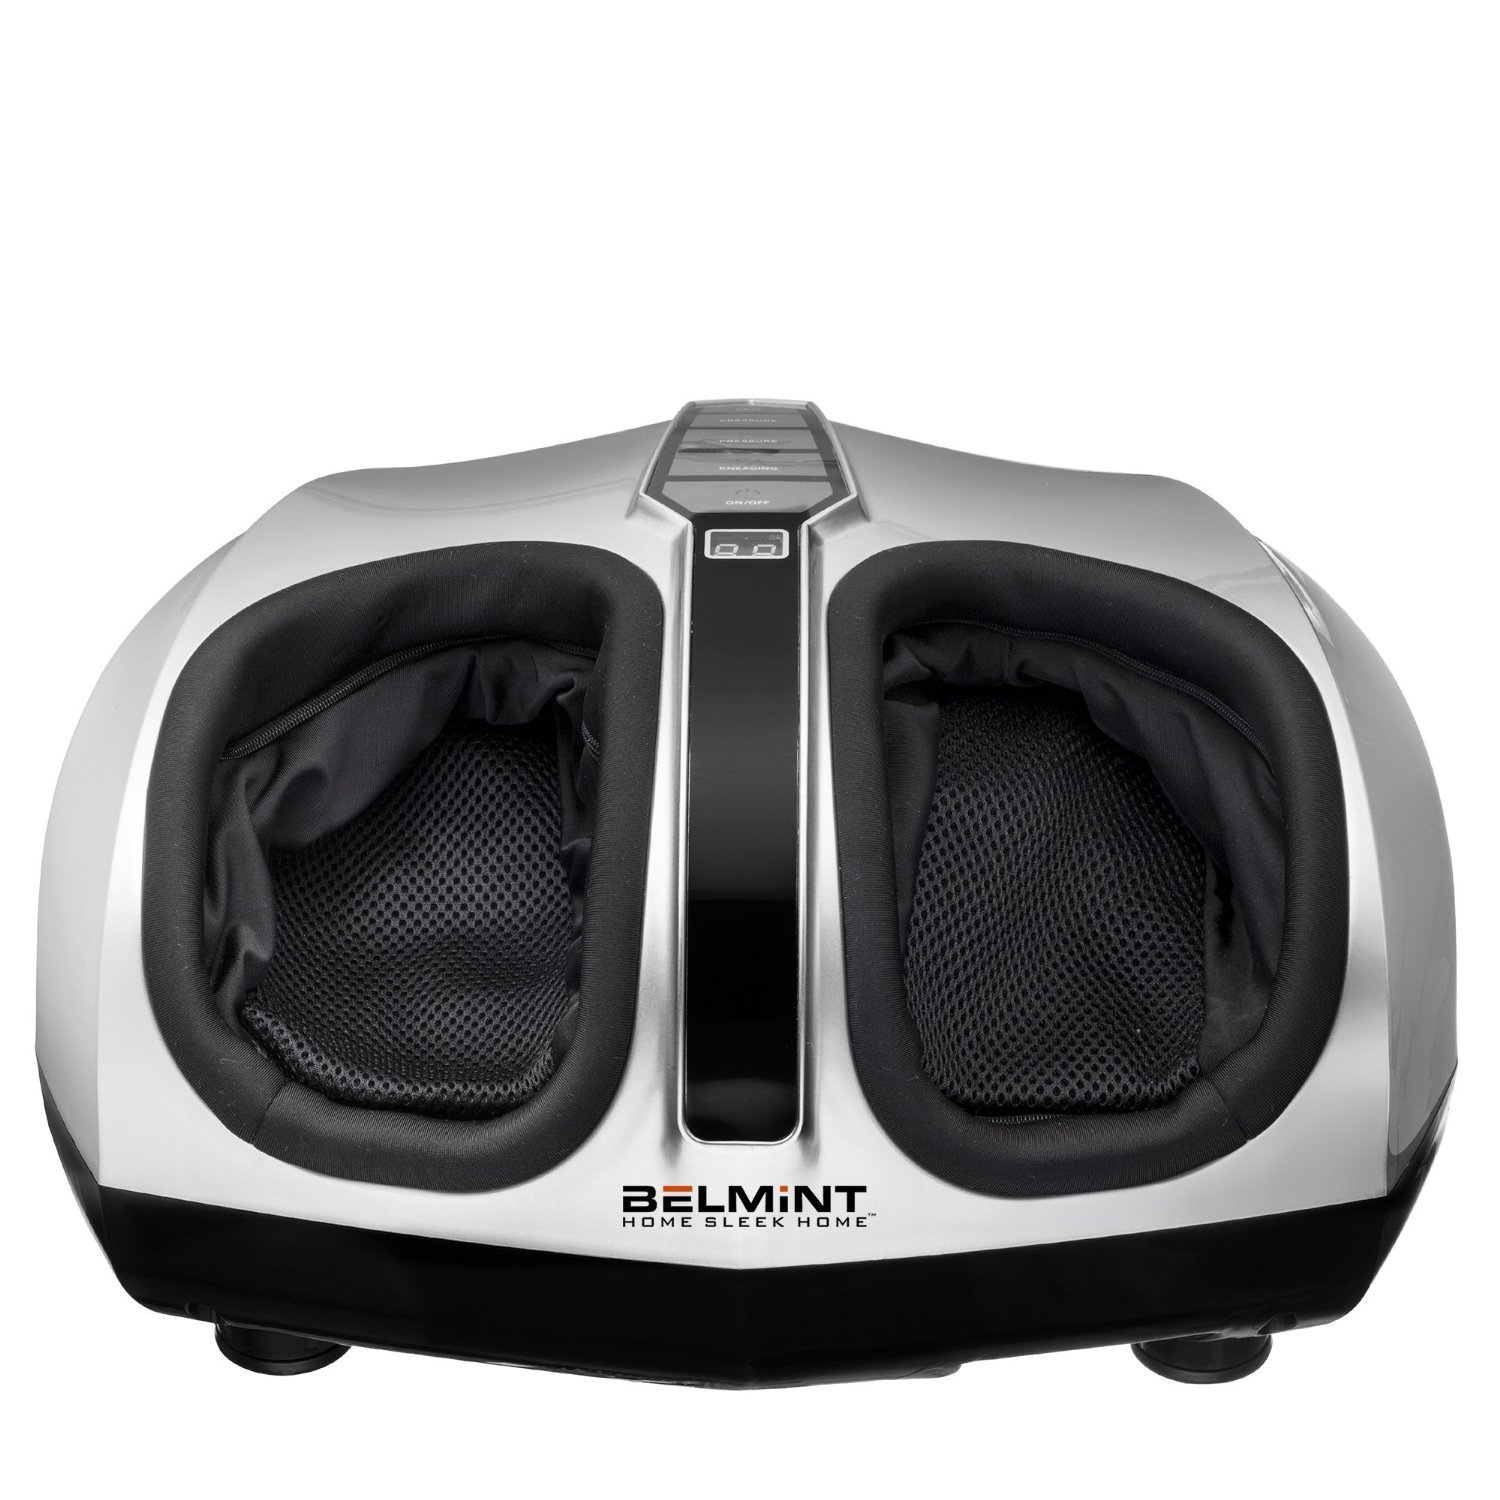 Belmint Shiatsu Foot Massager Machine with Heat Function, Multi Settings Deep-Kneading Shiatsu Therapy Feet Massager Silver